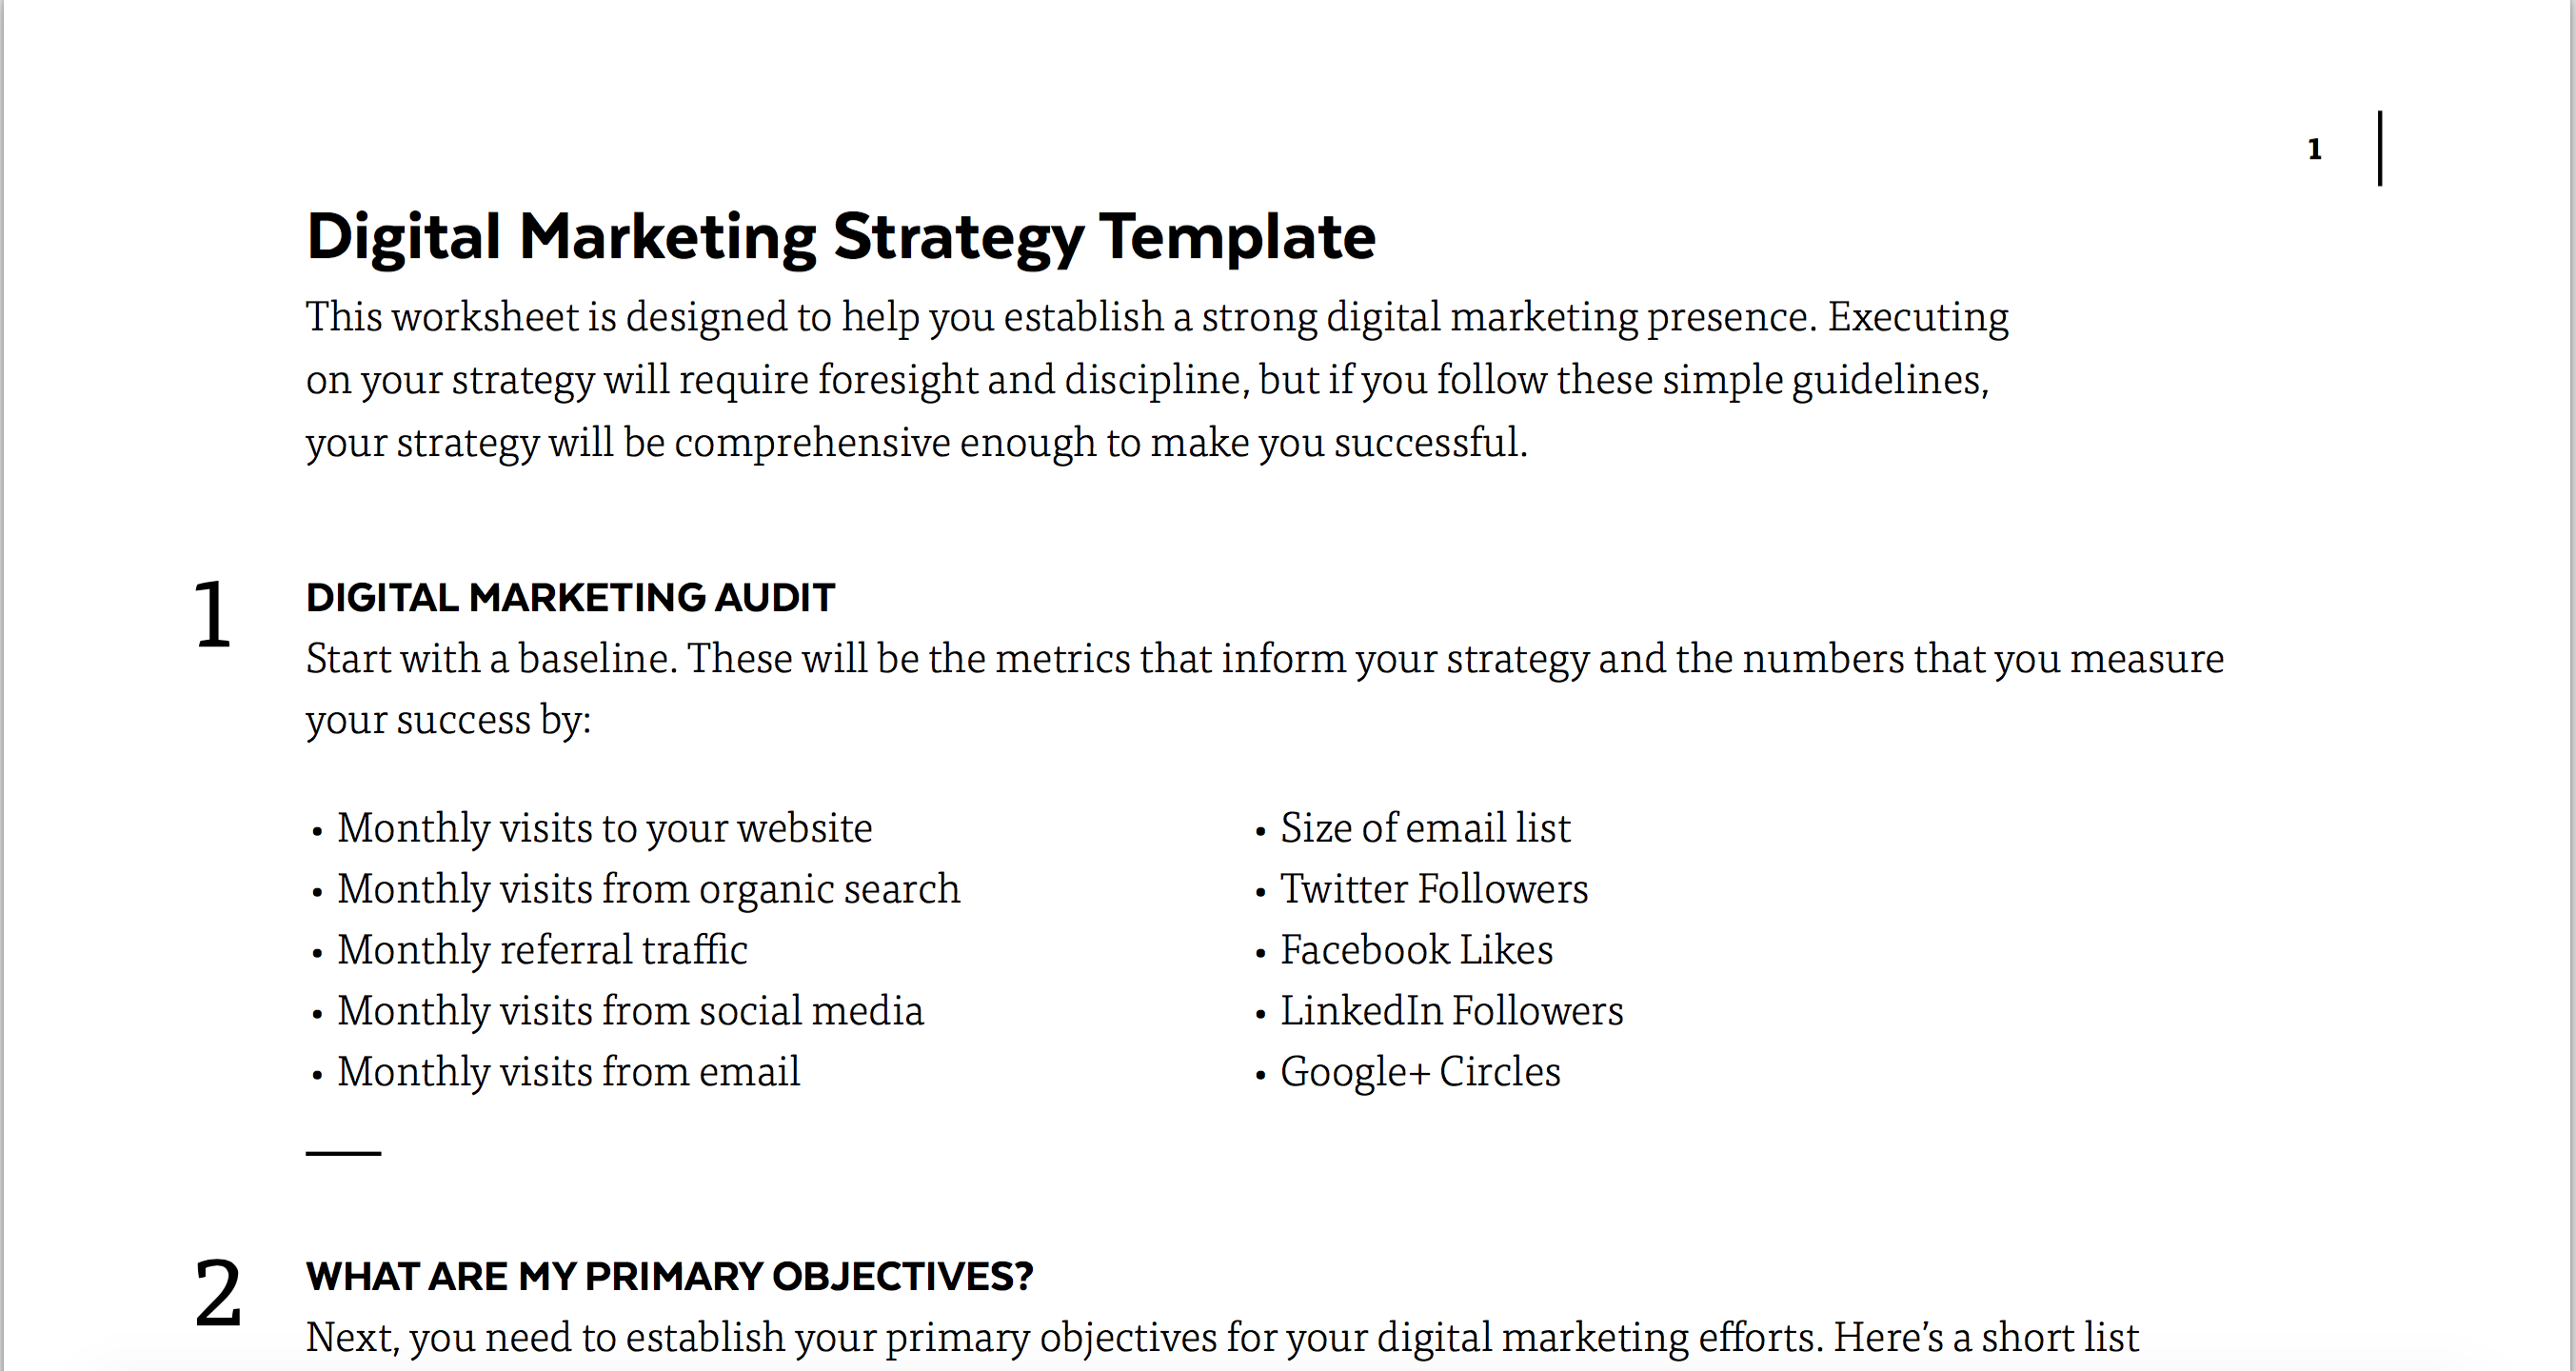 Digital Marketing Strategy Template | The Daily Egg